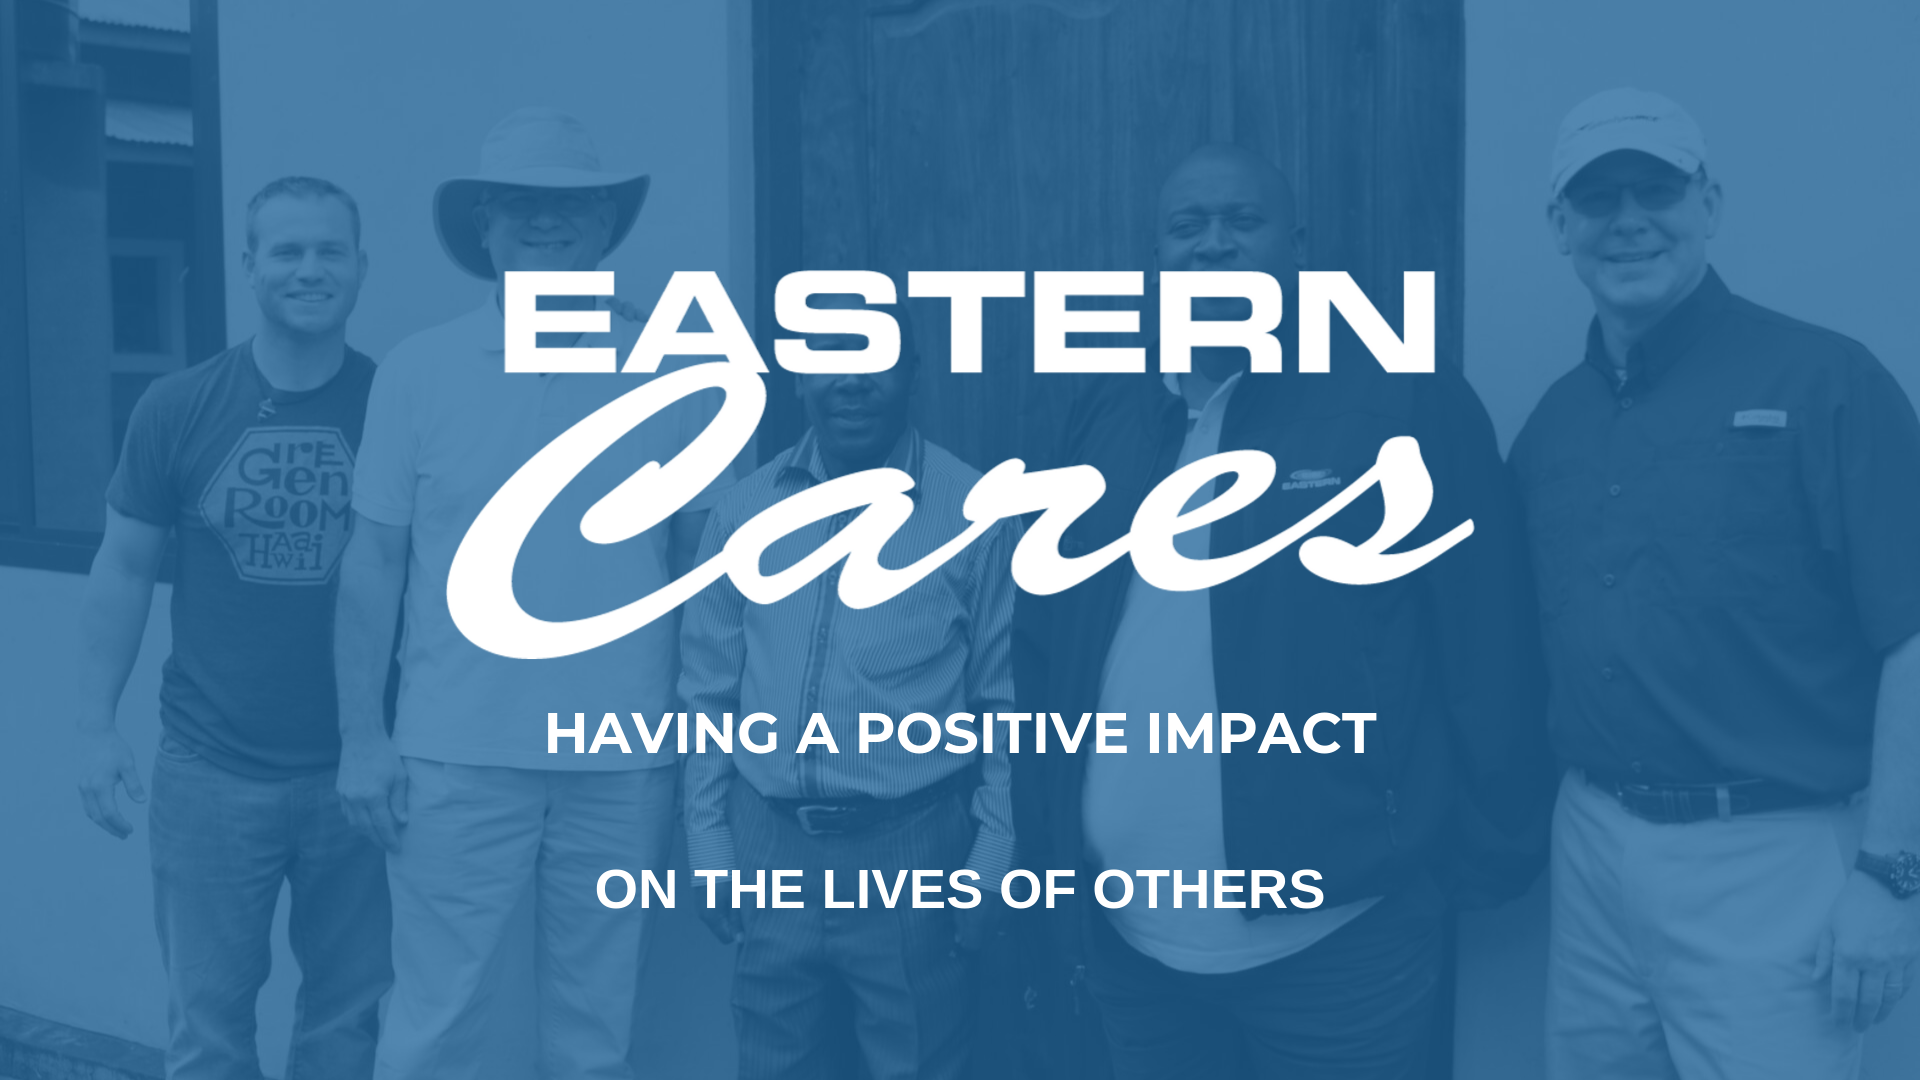 Eastern Cares Logo Having a Positive Impact on the Lives of Others